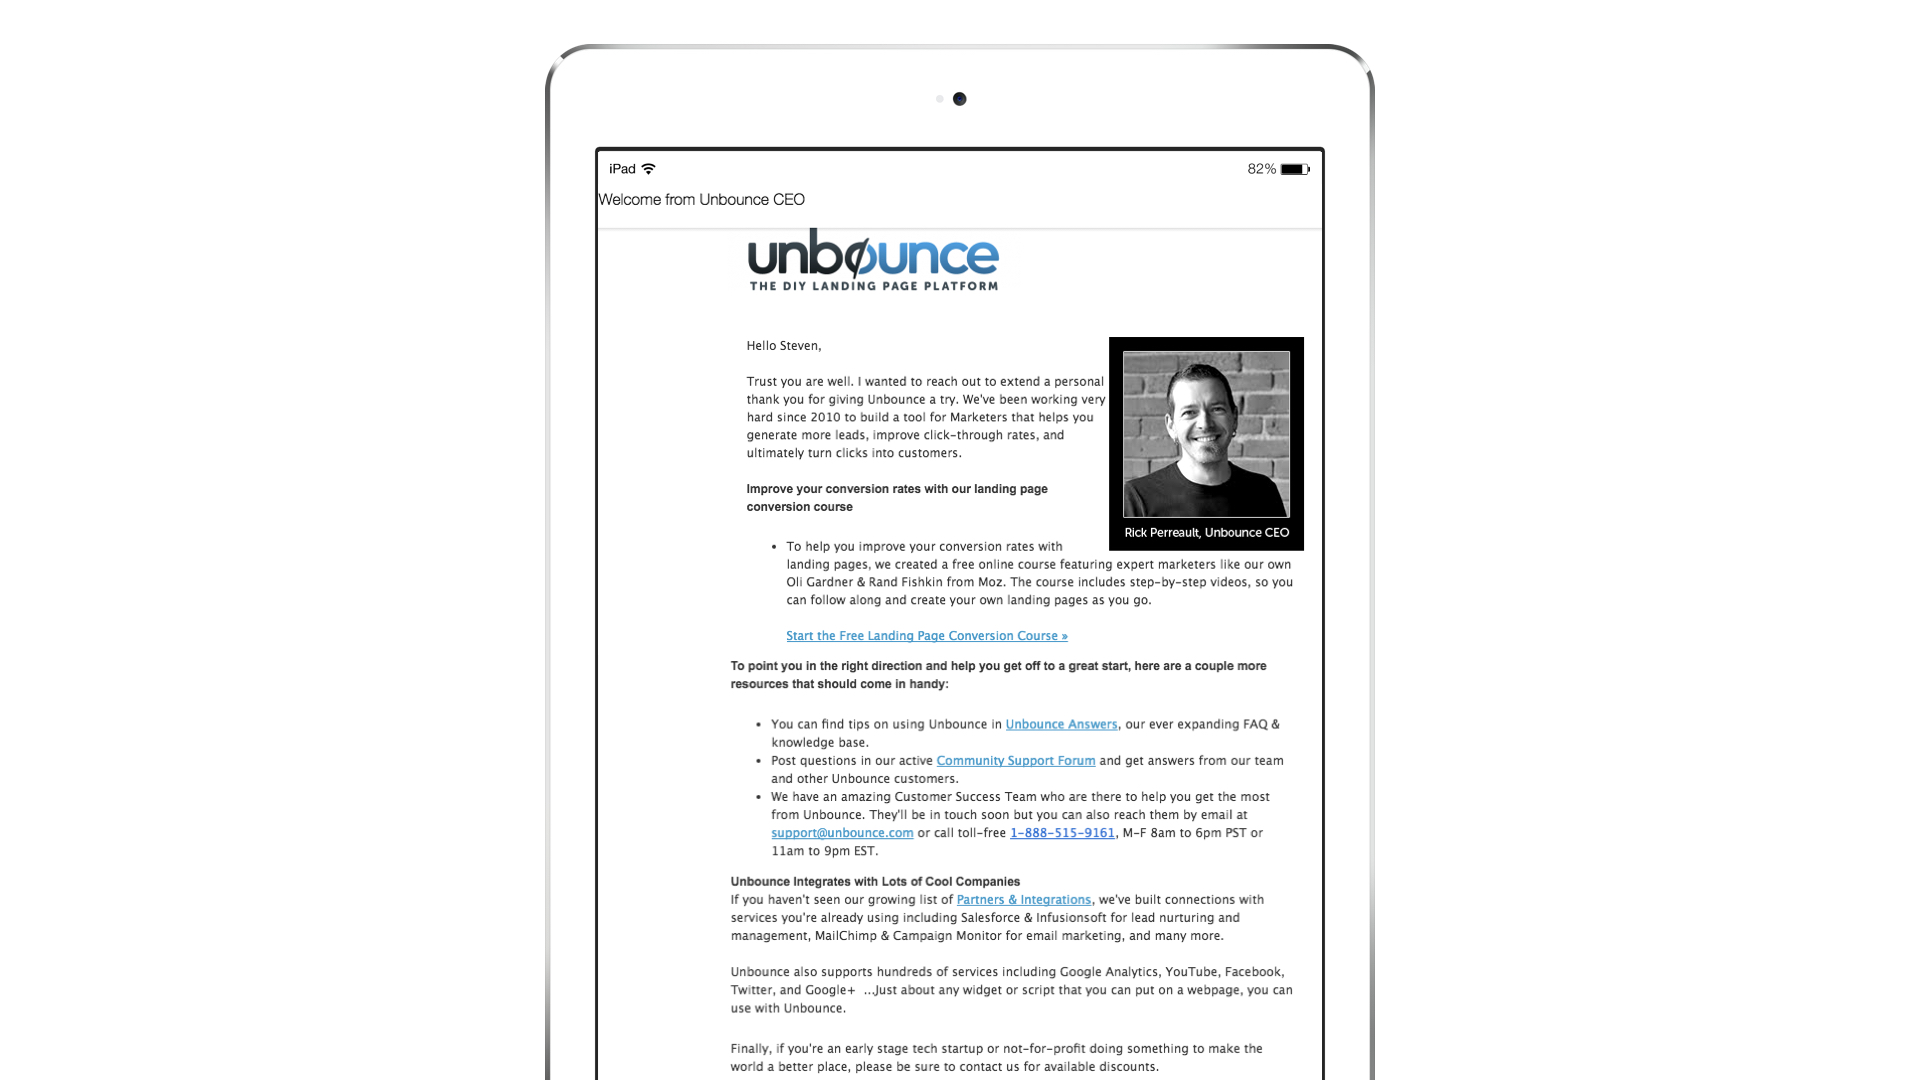 Unbounce welcome message